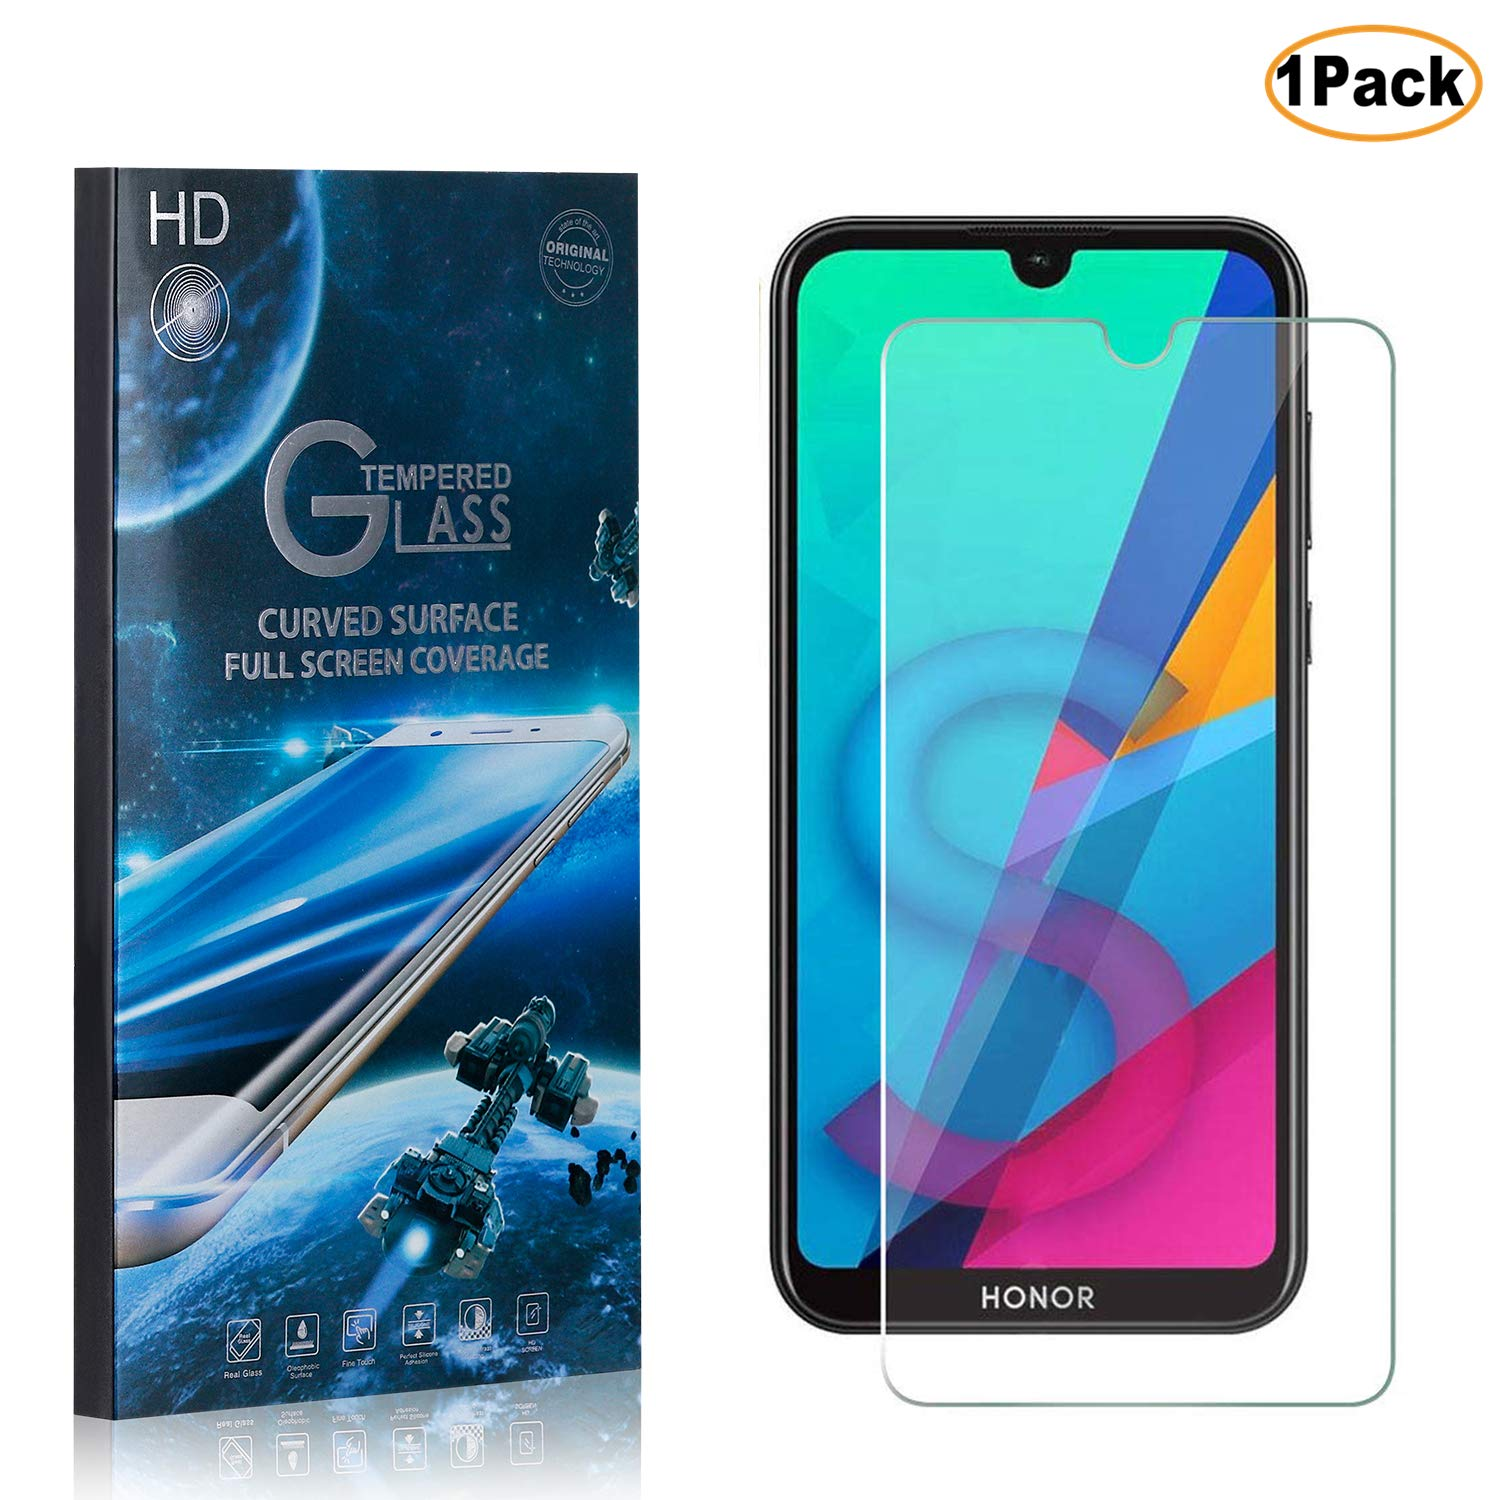 1 Pack CUSKING Huawei Honor 8S Screen Protector Tempered Glass 9H Hardness Abrasion Resistance Anti Scratch Screen Protector for Huawei Honor 8S